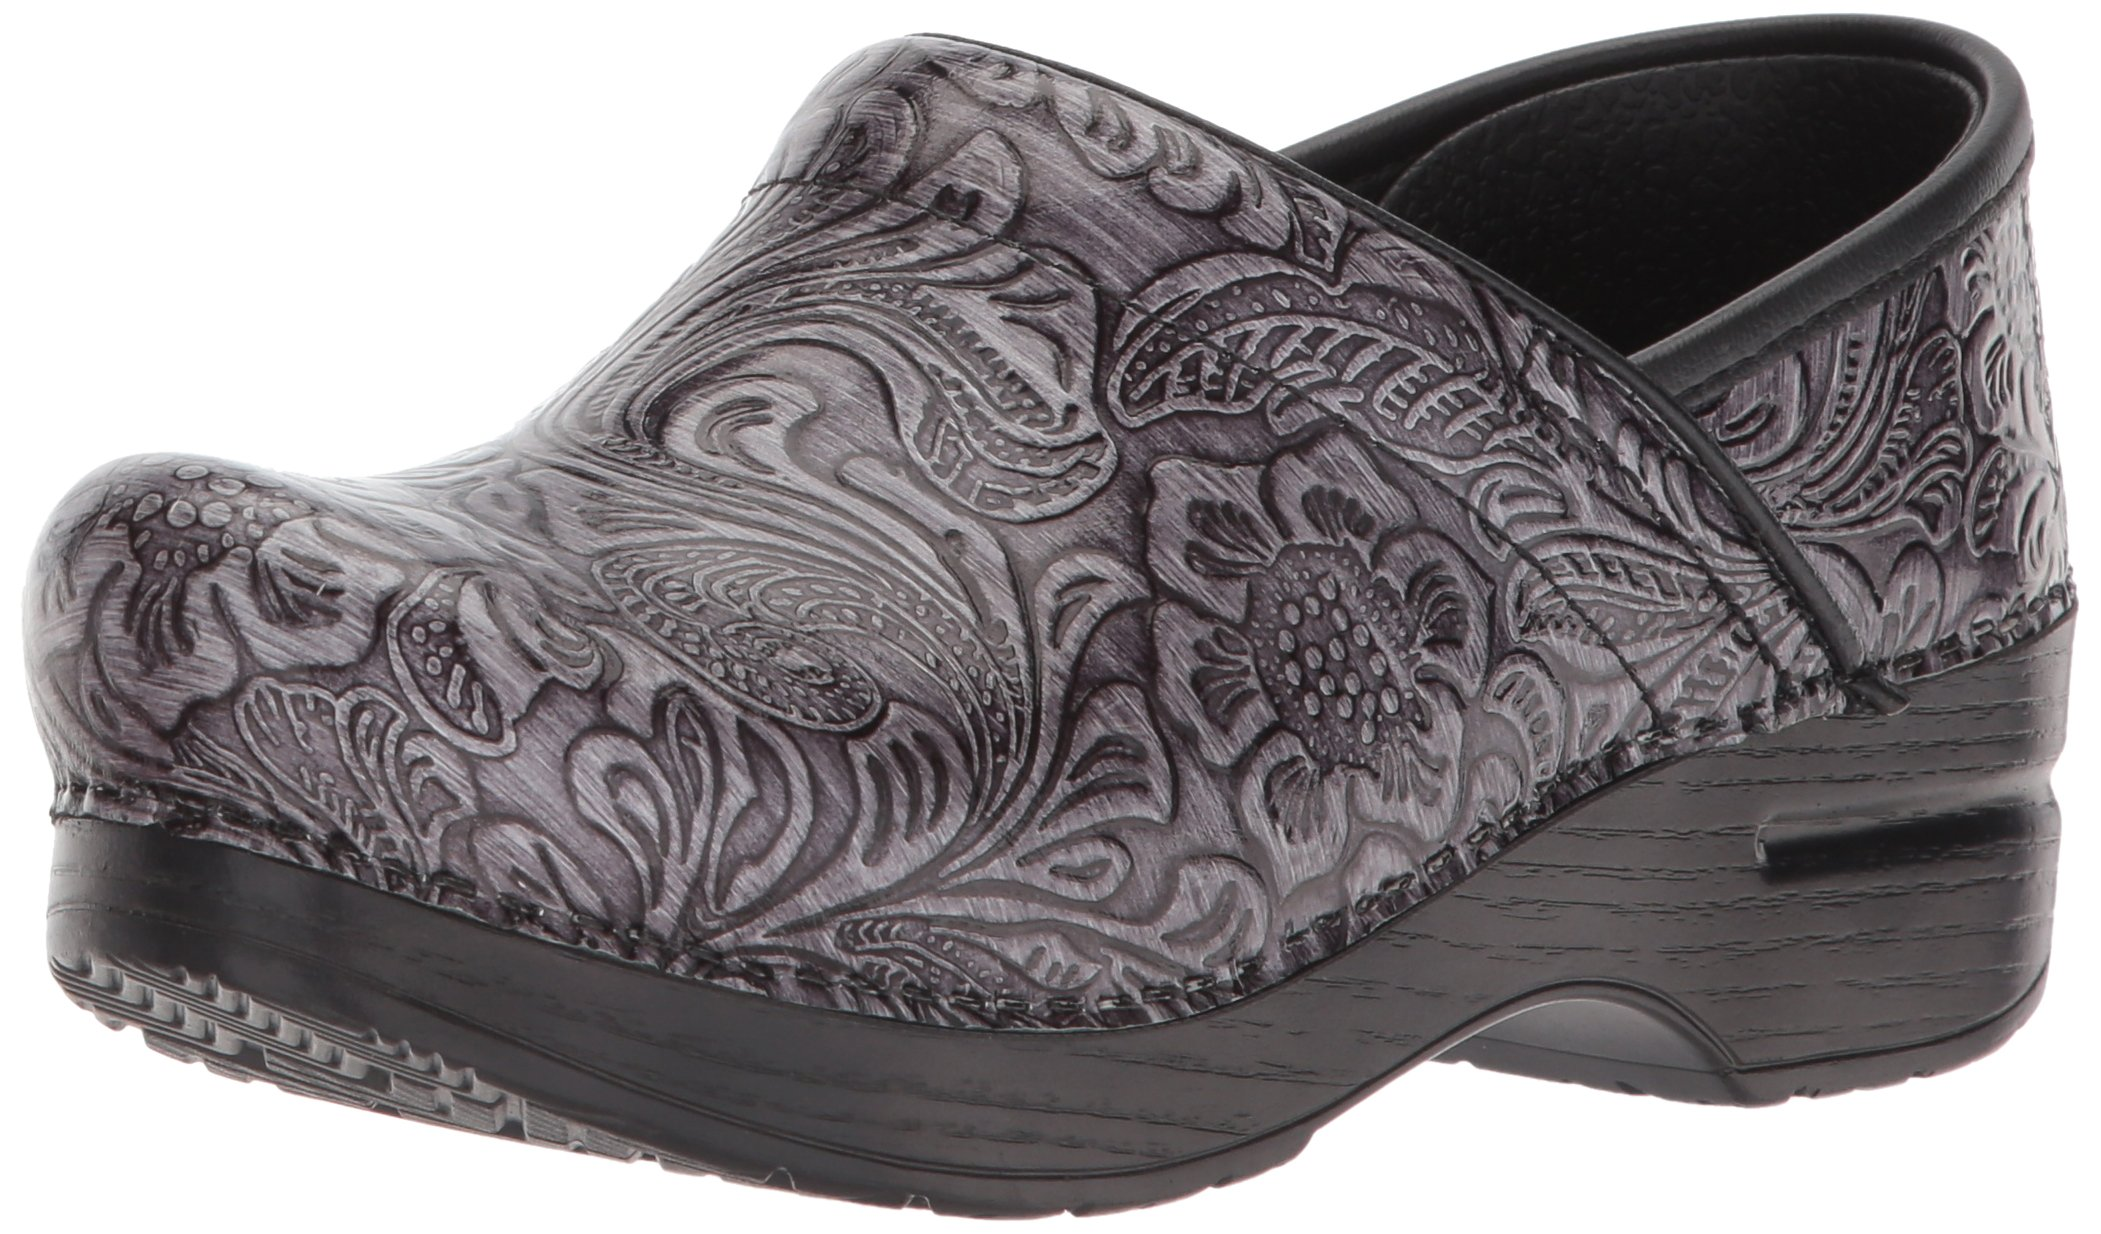 Dansko Women's Professional Clog, Grey Tooled Patent, 38 M EU (7.5-8 US)